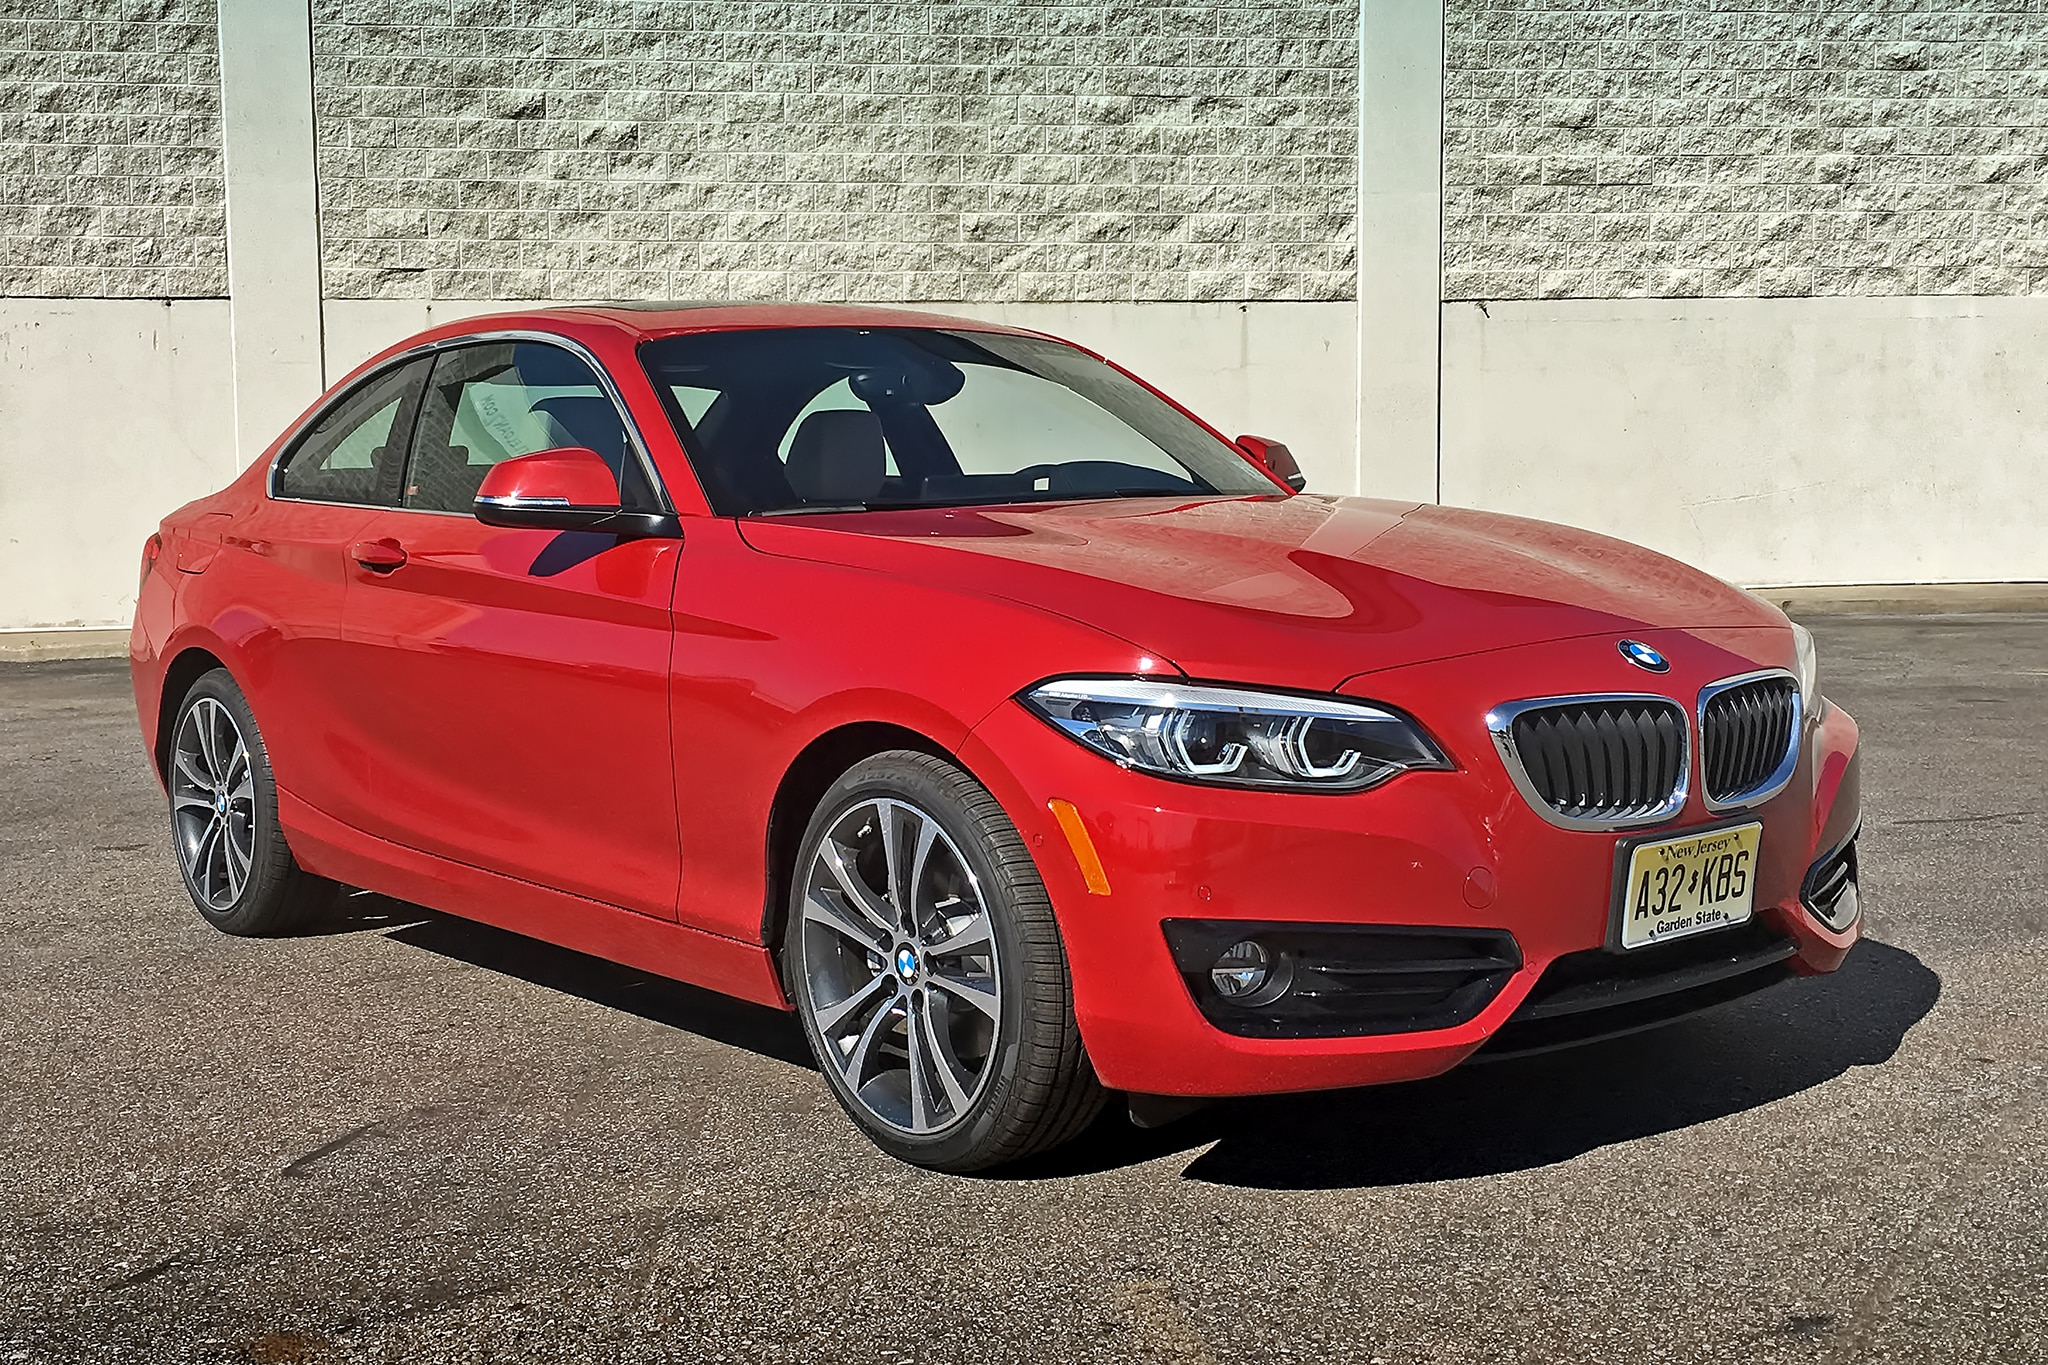 BMW 230i xDrive Coupe Review: The Just-Right BMW